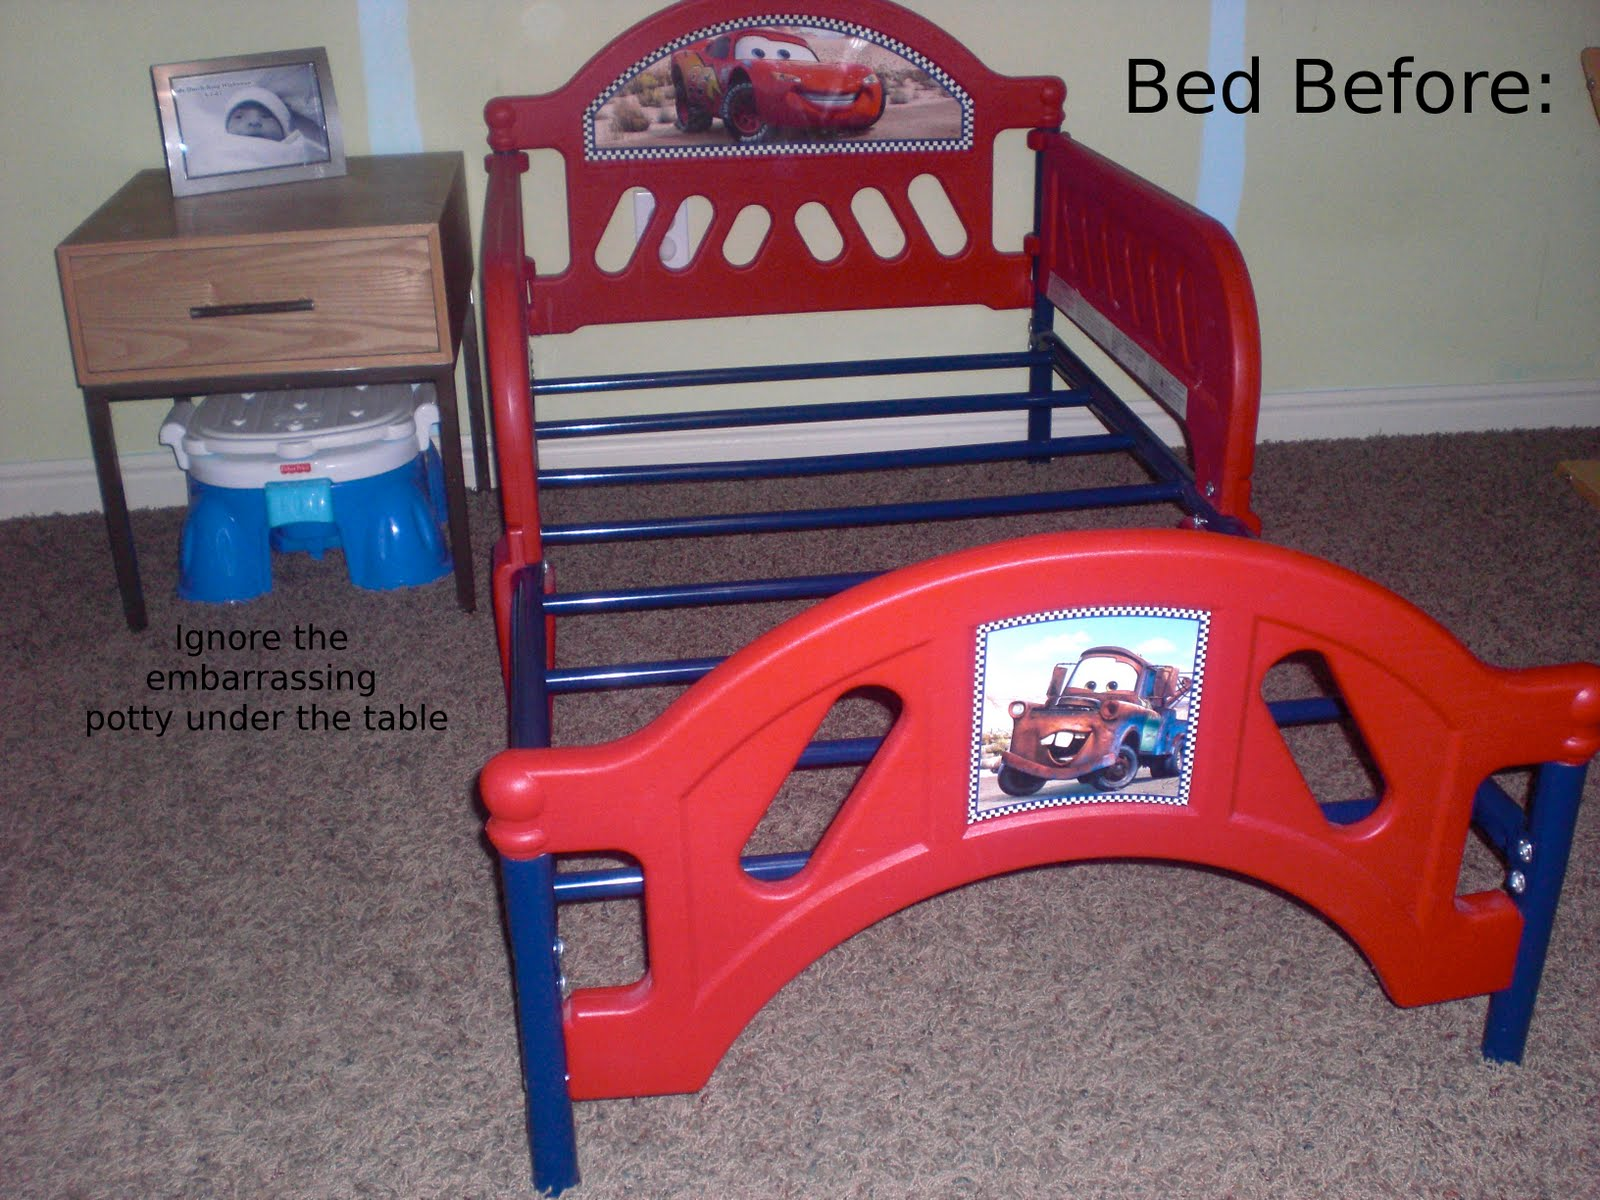 The toddler bed makeover Shwin and Shwin